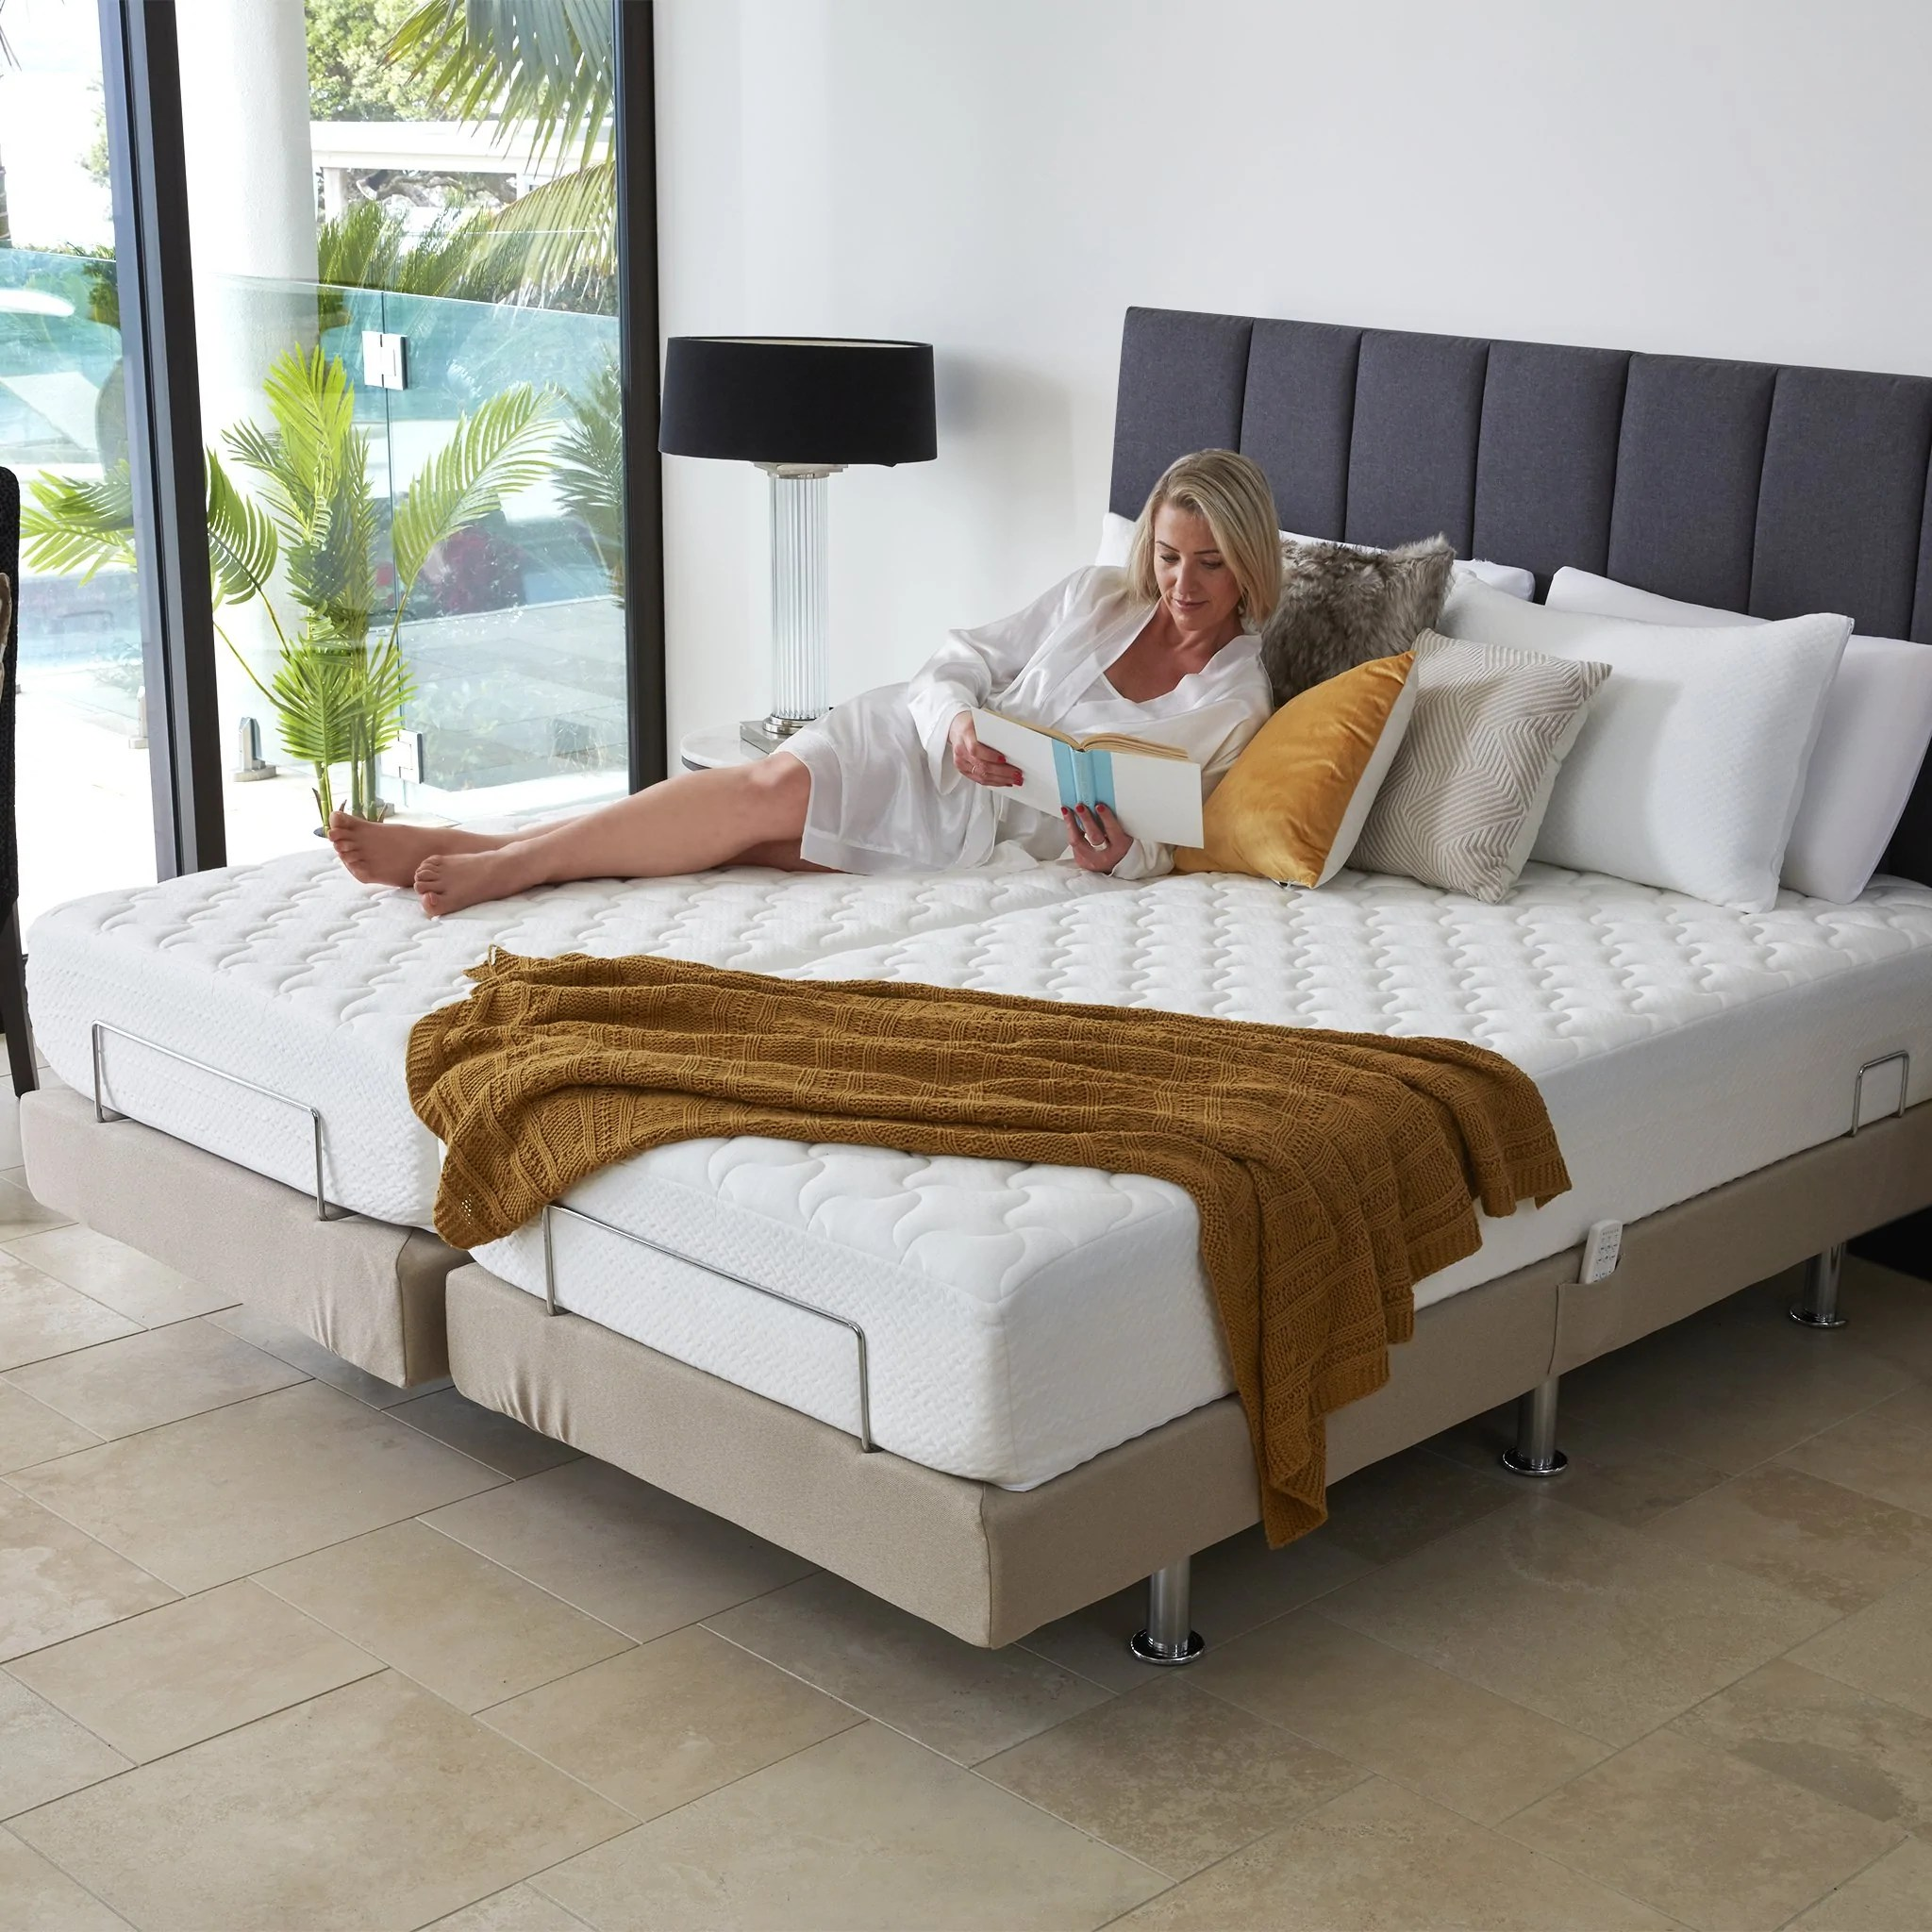 Perfect Fit Adjustable Massage Bed Split King Bambillo Nz